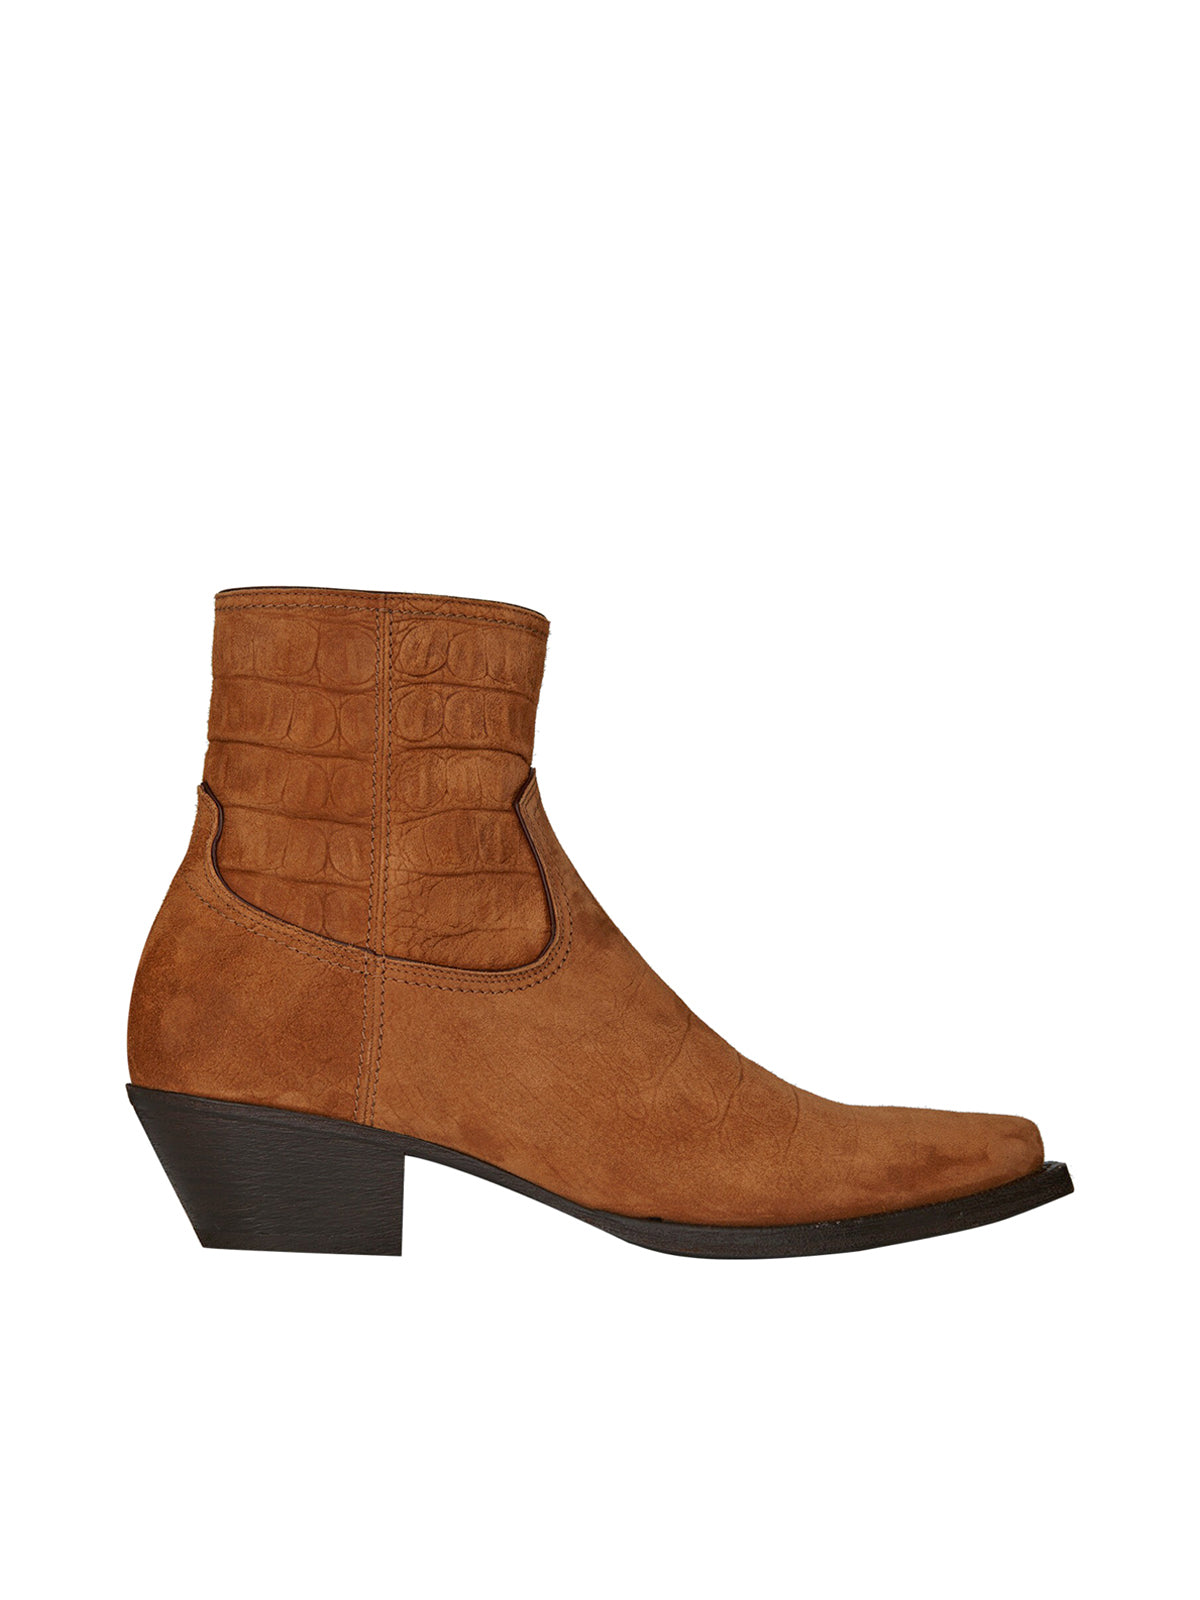 "WESTERN STYLE ""LUKAS"" BOOTS"